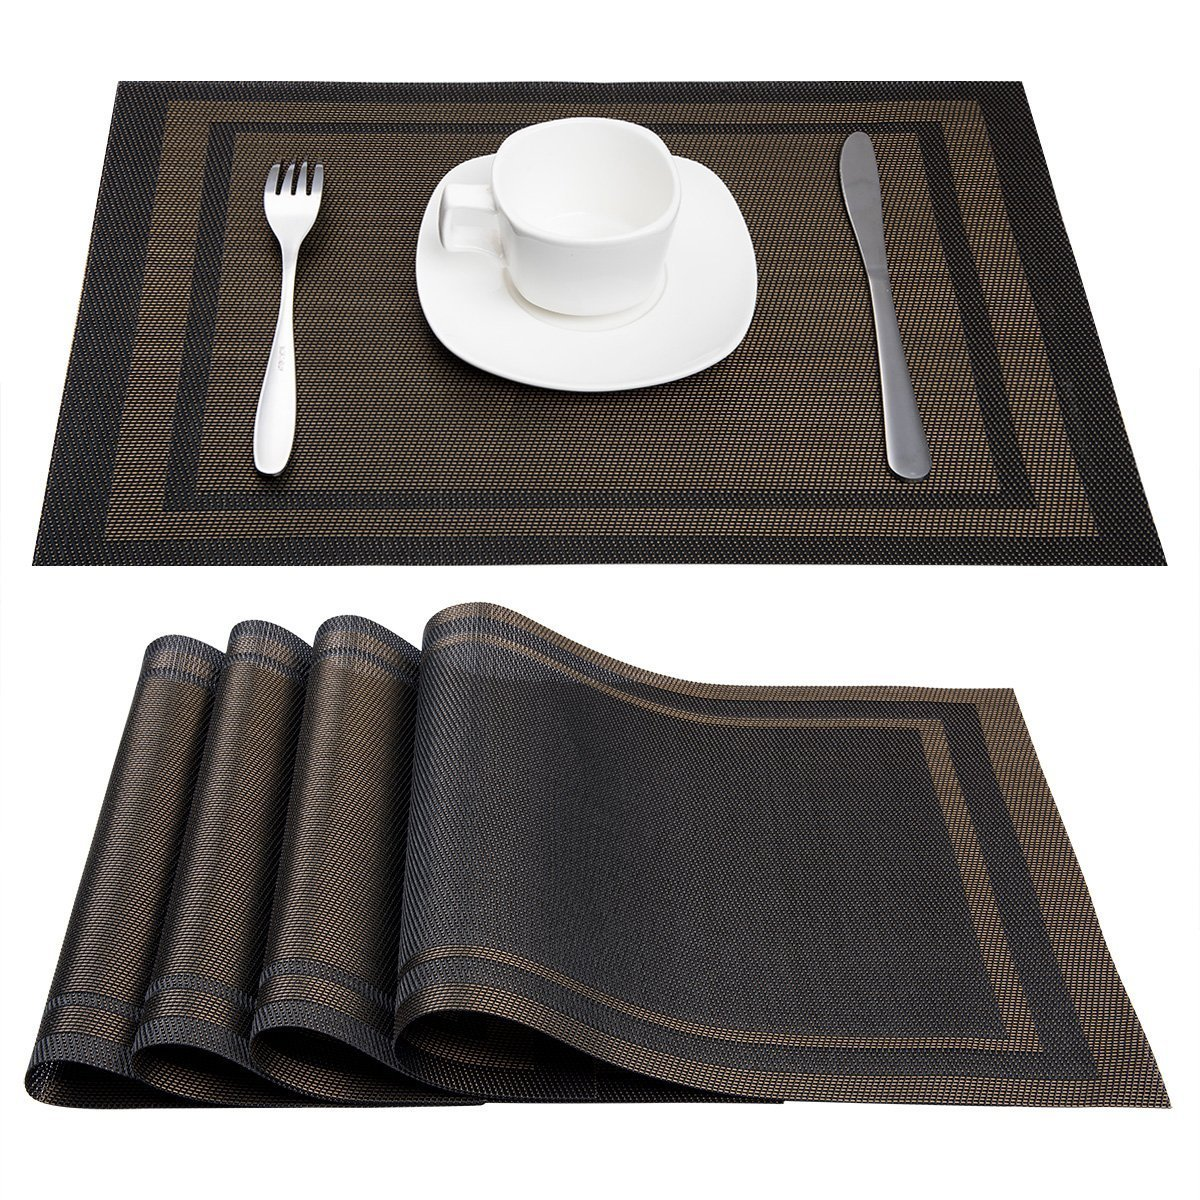 Artand Placemats, Heat-resistant Placemats Stain Resistant Anti-skid Washable PVC Table Mats Woven Vinyl Placemats, Set of 4 (Black+Gold)